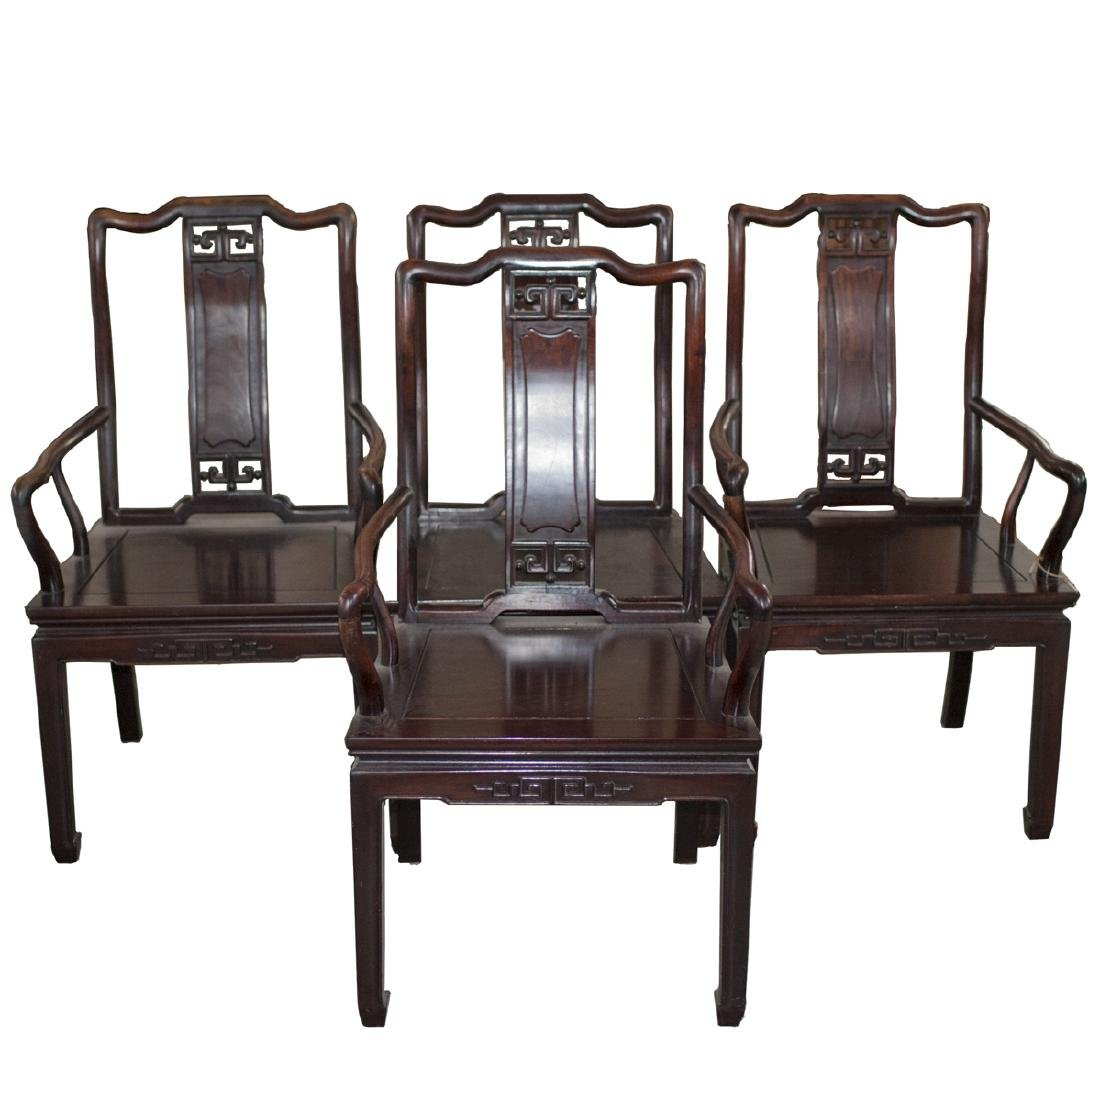 Carved Chinese Wooden Arm Chairs